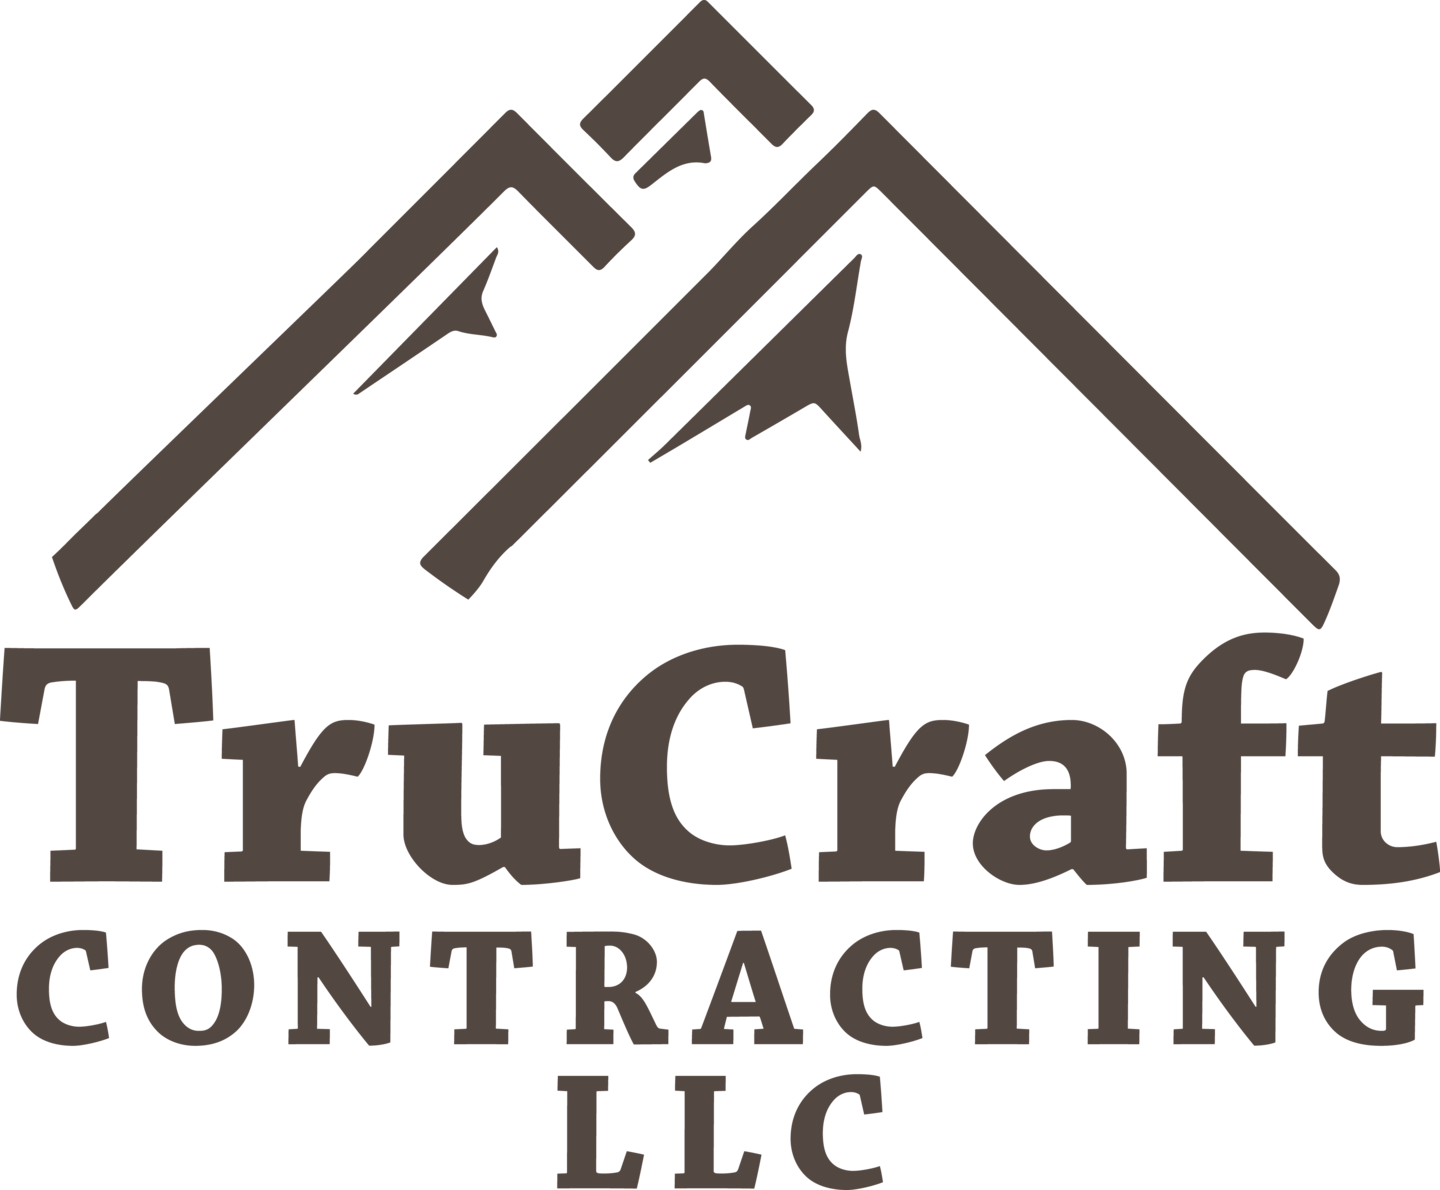 TruCraft Contracting